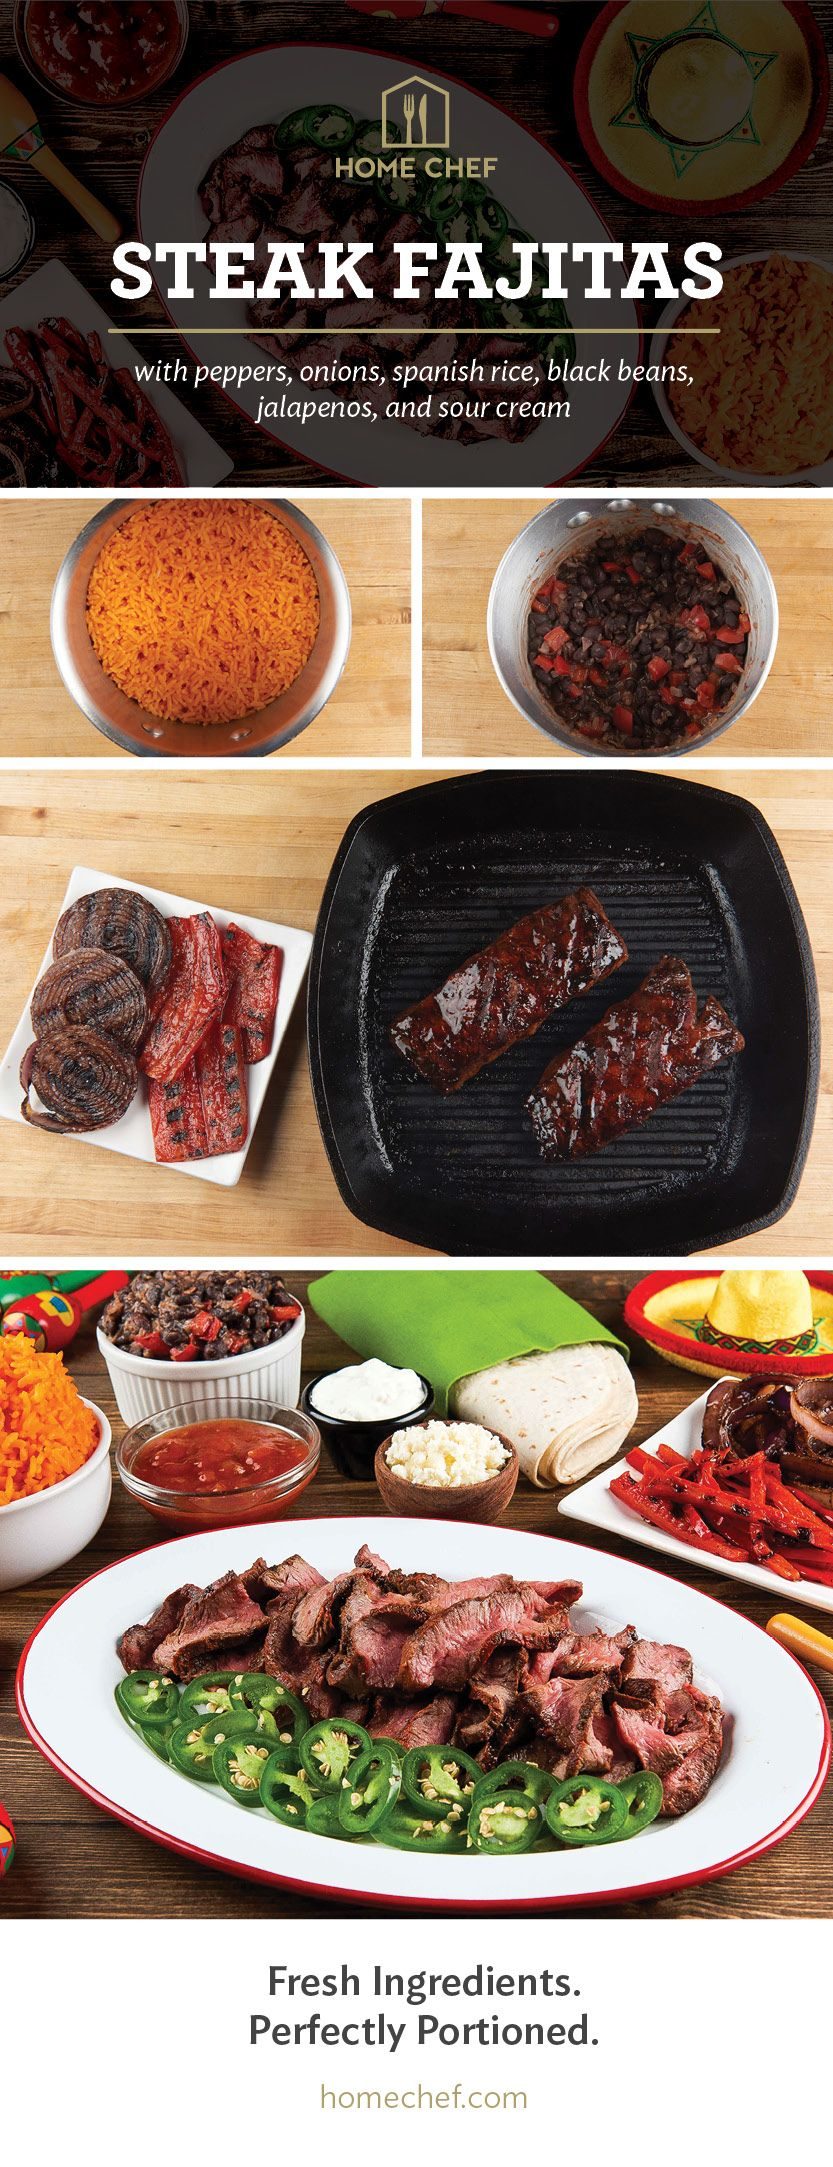 Steak Fajitas With Peppers Onions Spanish Rice Black Beans Jalapenos And Sour Cream The Table Recipes Food Mexican Food Recipes